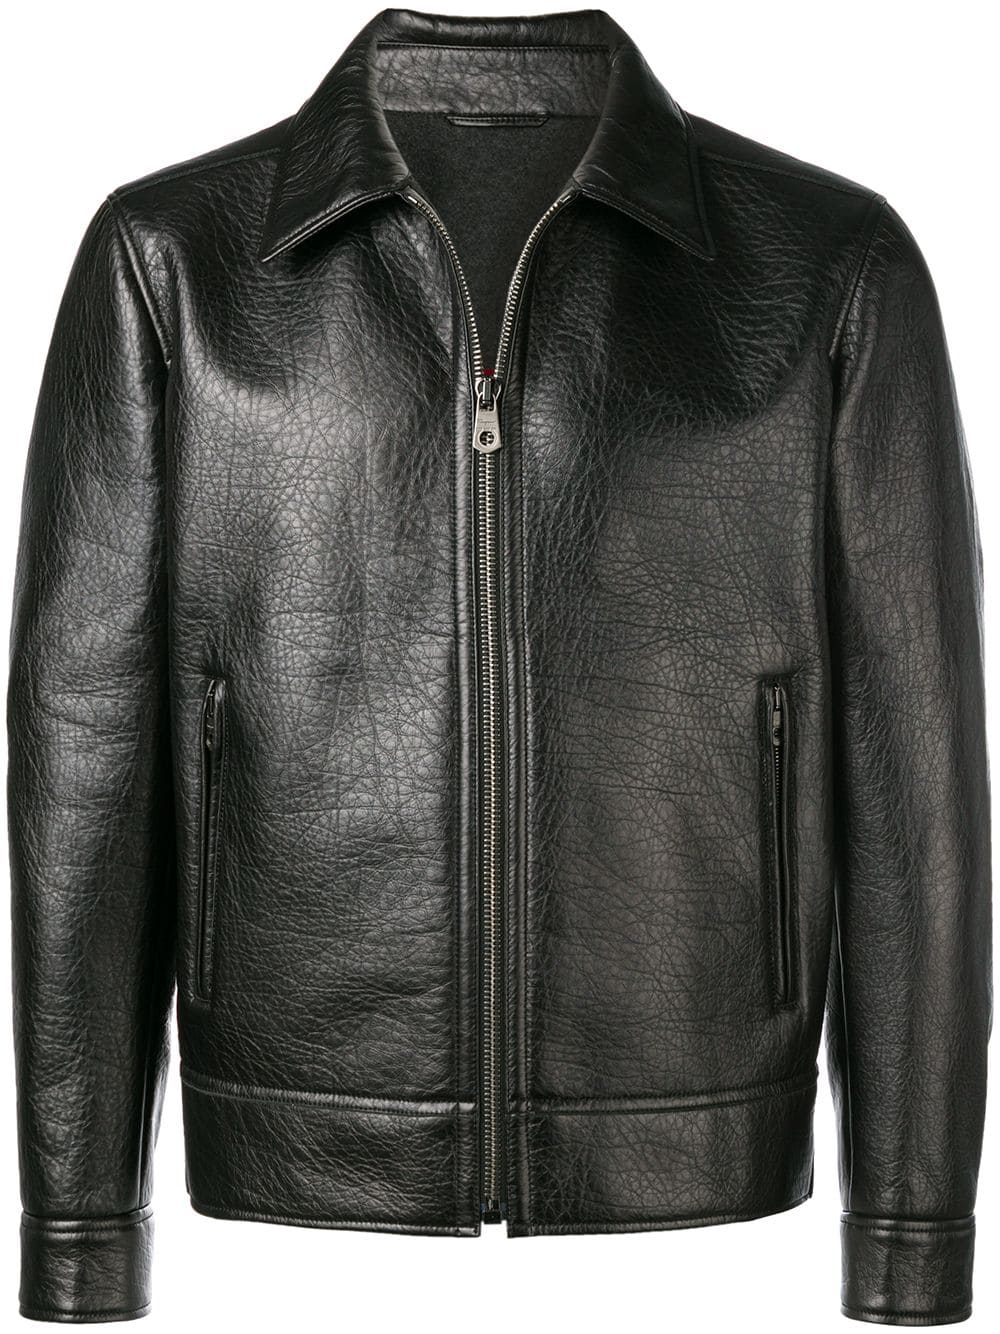 165db037a Salvatore Ferragamo zipped leather jacket - Black in 2019 | Products ...